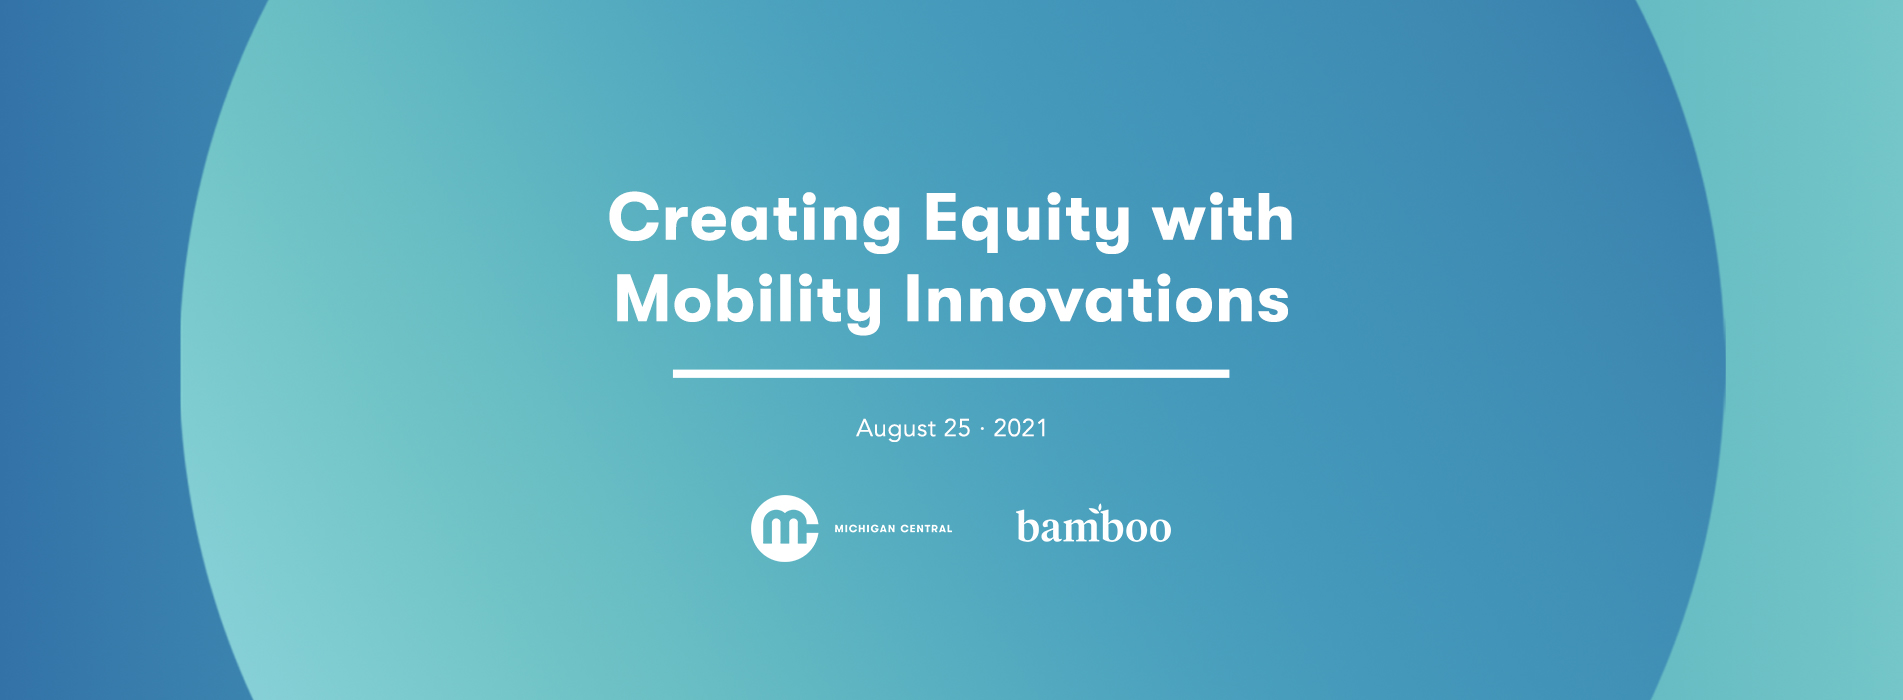 bamboo - creating equity with mobility innovations